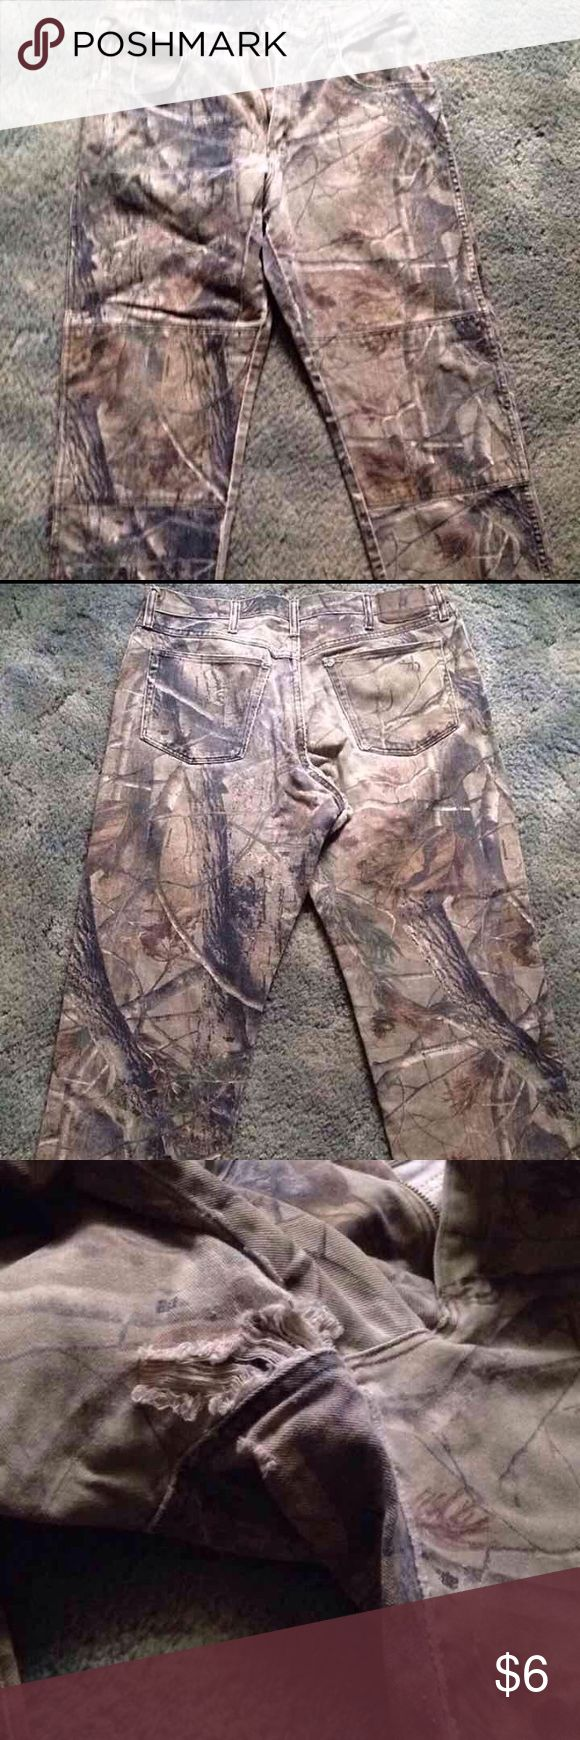 Mens Camo Pants sz 34 x 30 Can be used as work pants or hunting jeans. Great condition other than rip in crotch area. Bundle with lots of other jeans for discounts Wrangler Jeans Relaxed